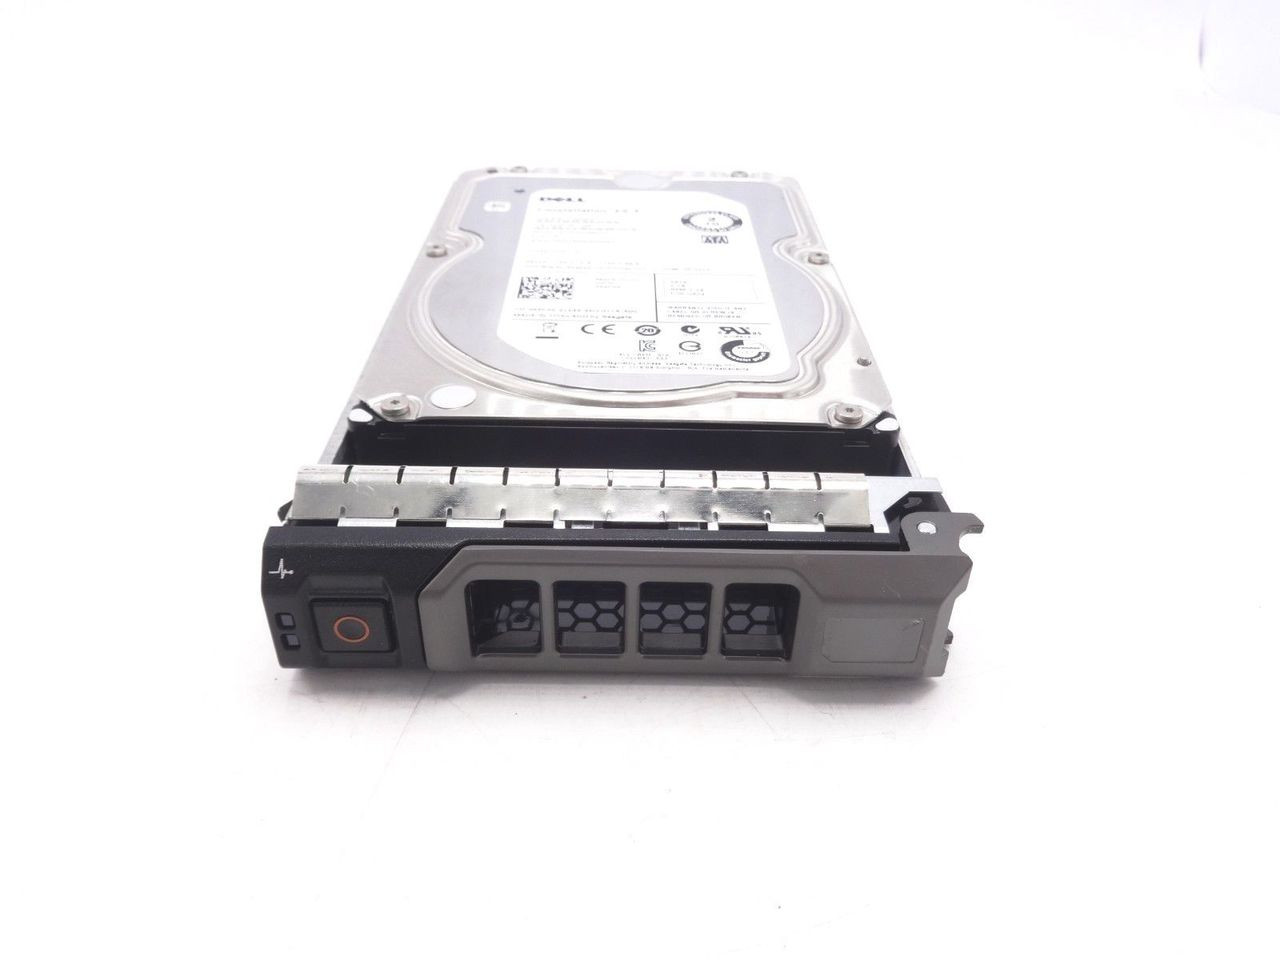 Dell 55FX5 2TB SATA 7200 3.5 RPM Enterprise 6GBPS ST2000NM0033 9ZM175-036